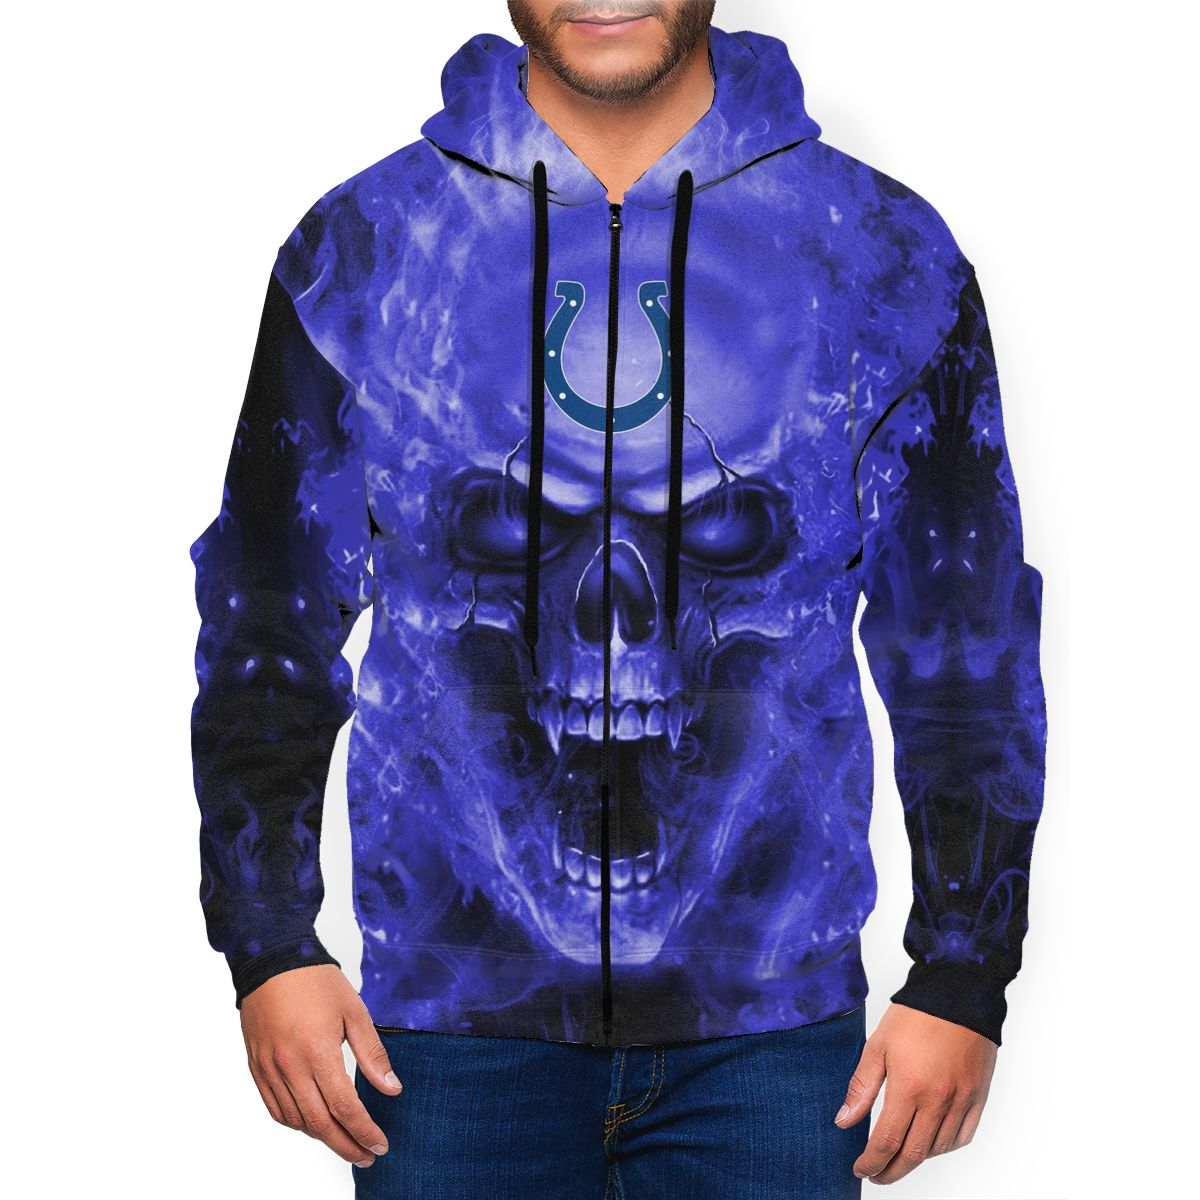 3D Skull Colts Men's Zip Hooded Sweatshirt